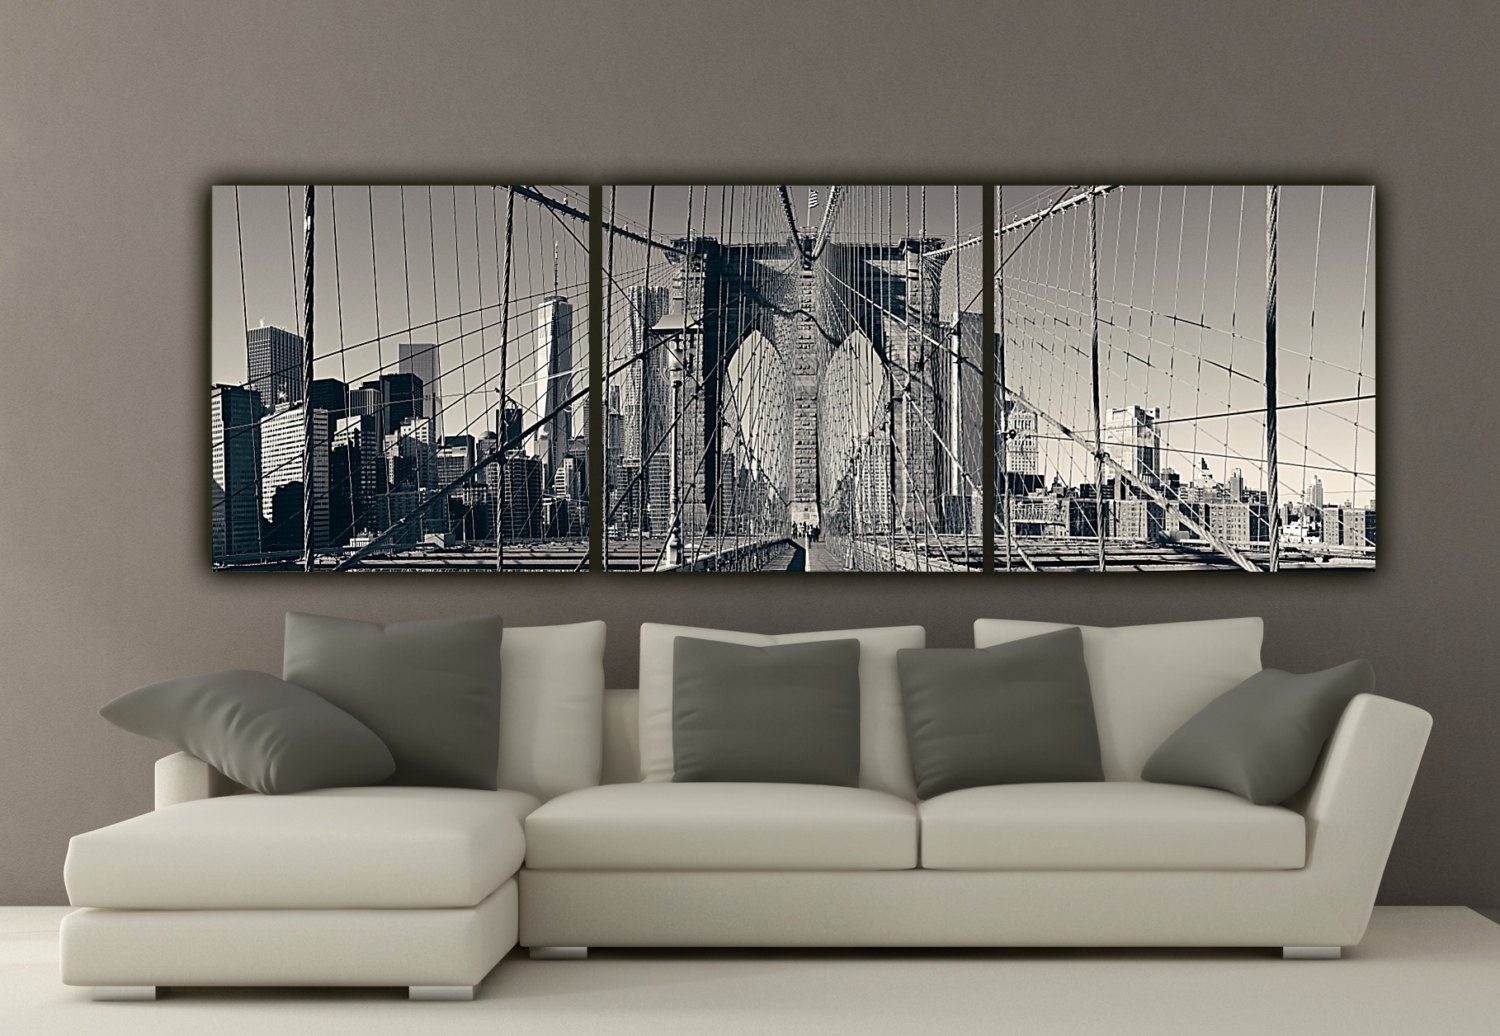 New Canvas Wall Art New York City | Wall Decorations Pertaining To Most Up To Date New York Wall Art (Gallery 2 of 20)